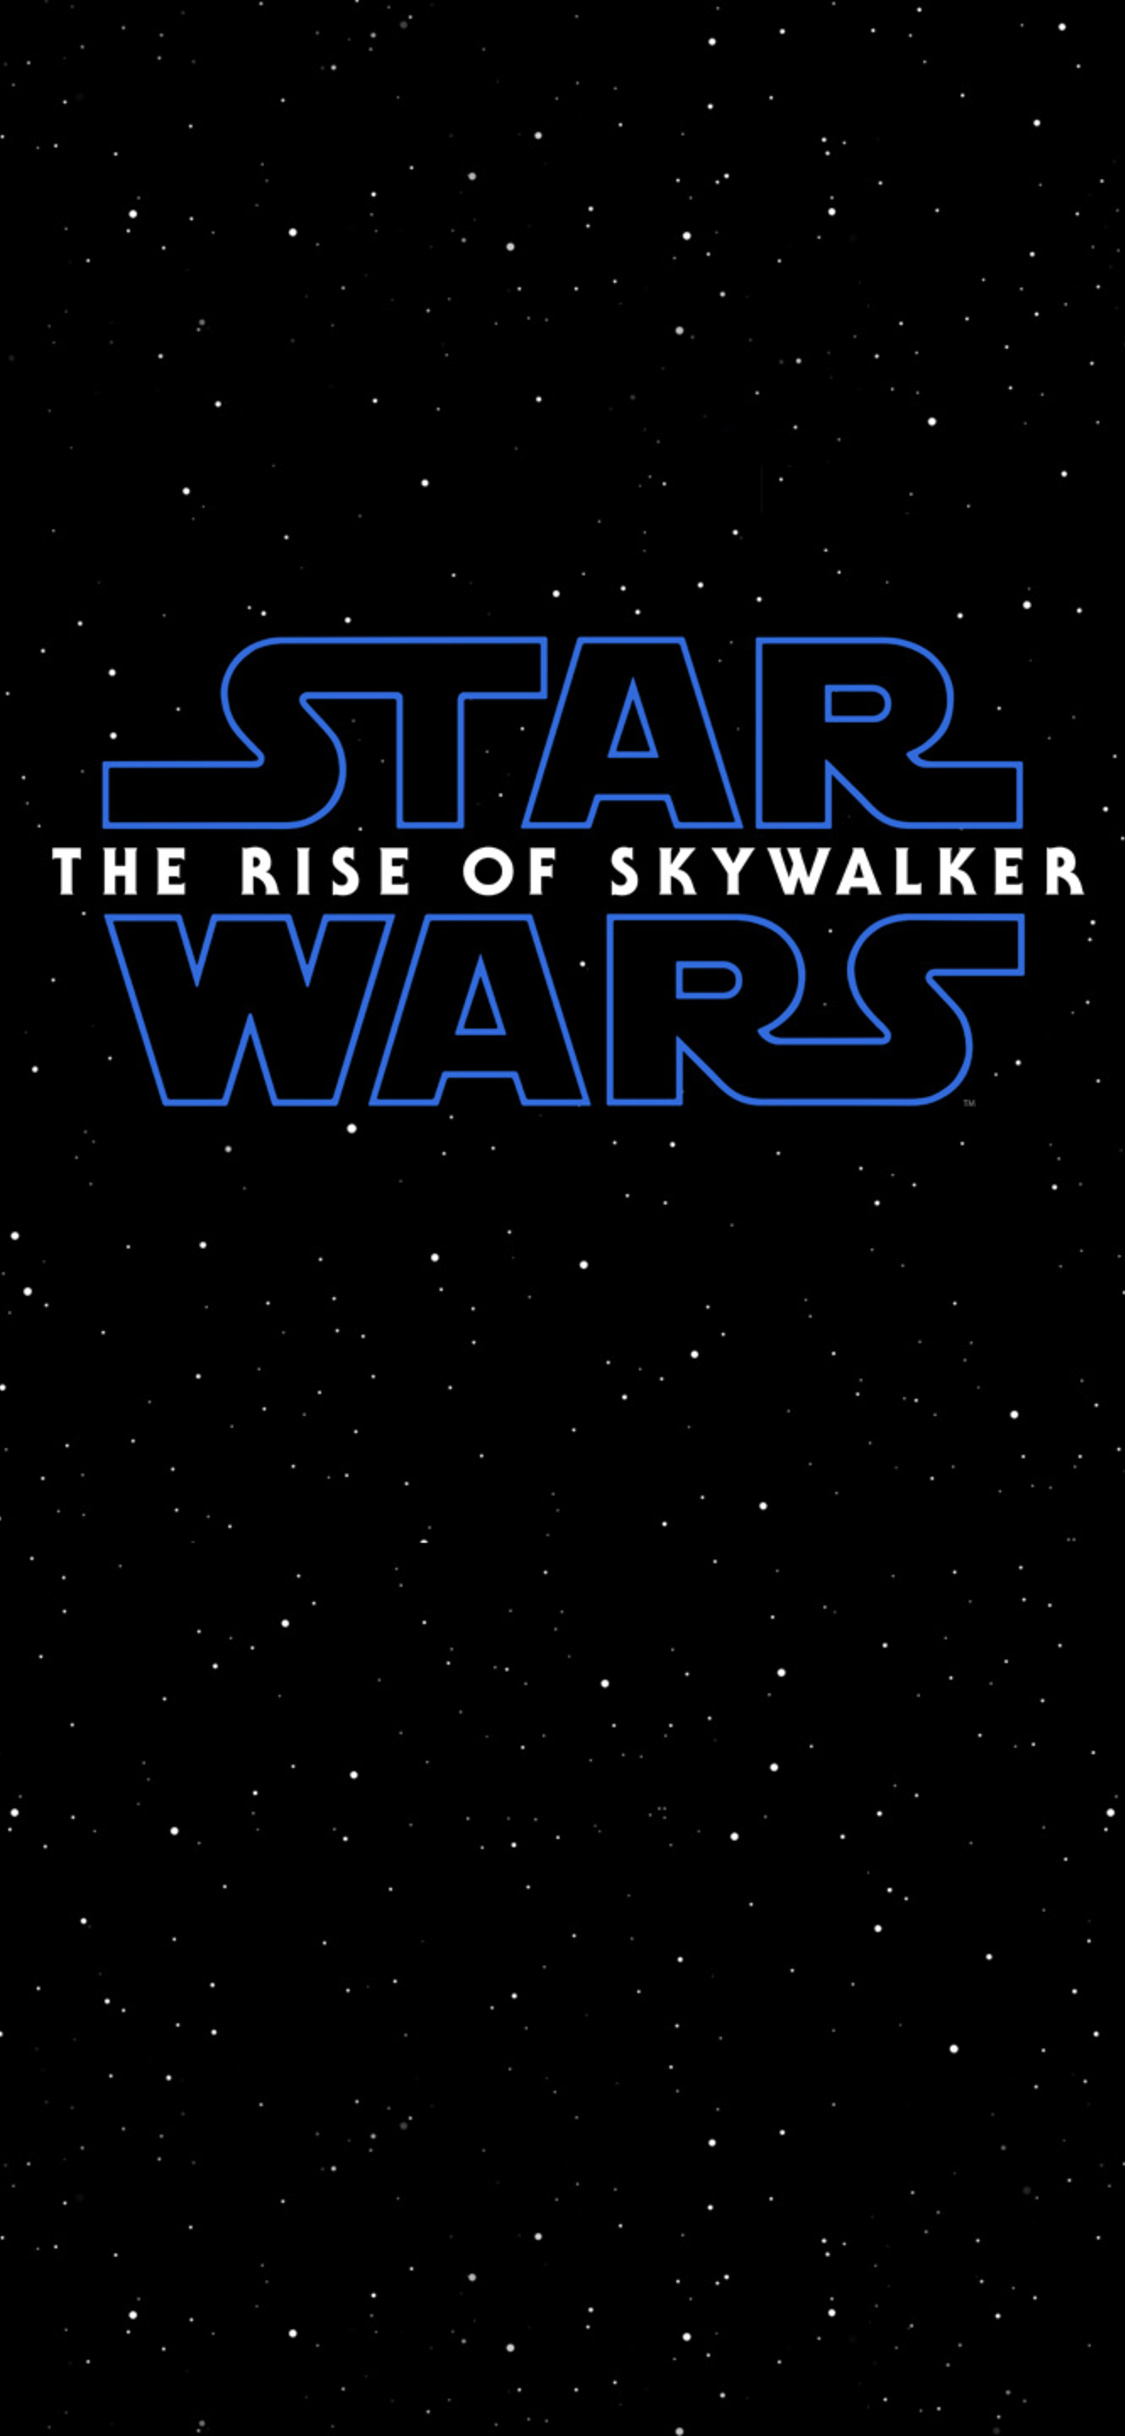 1125x2436 Star Wars The Rise Of Skywalker 2019 Iphone Xs Iphone 10 Iphone X Hd 4k Wallpapers Images Backgrounds Photos And Pictures